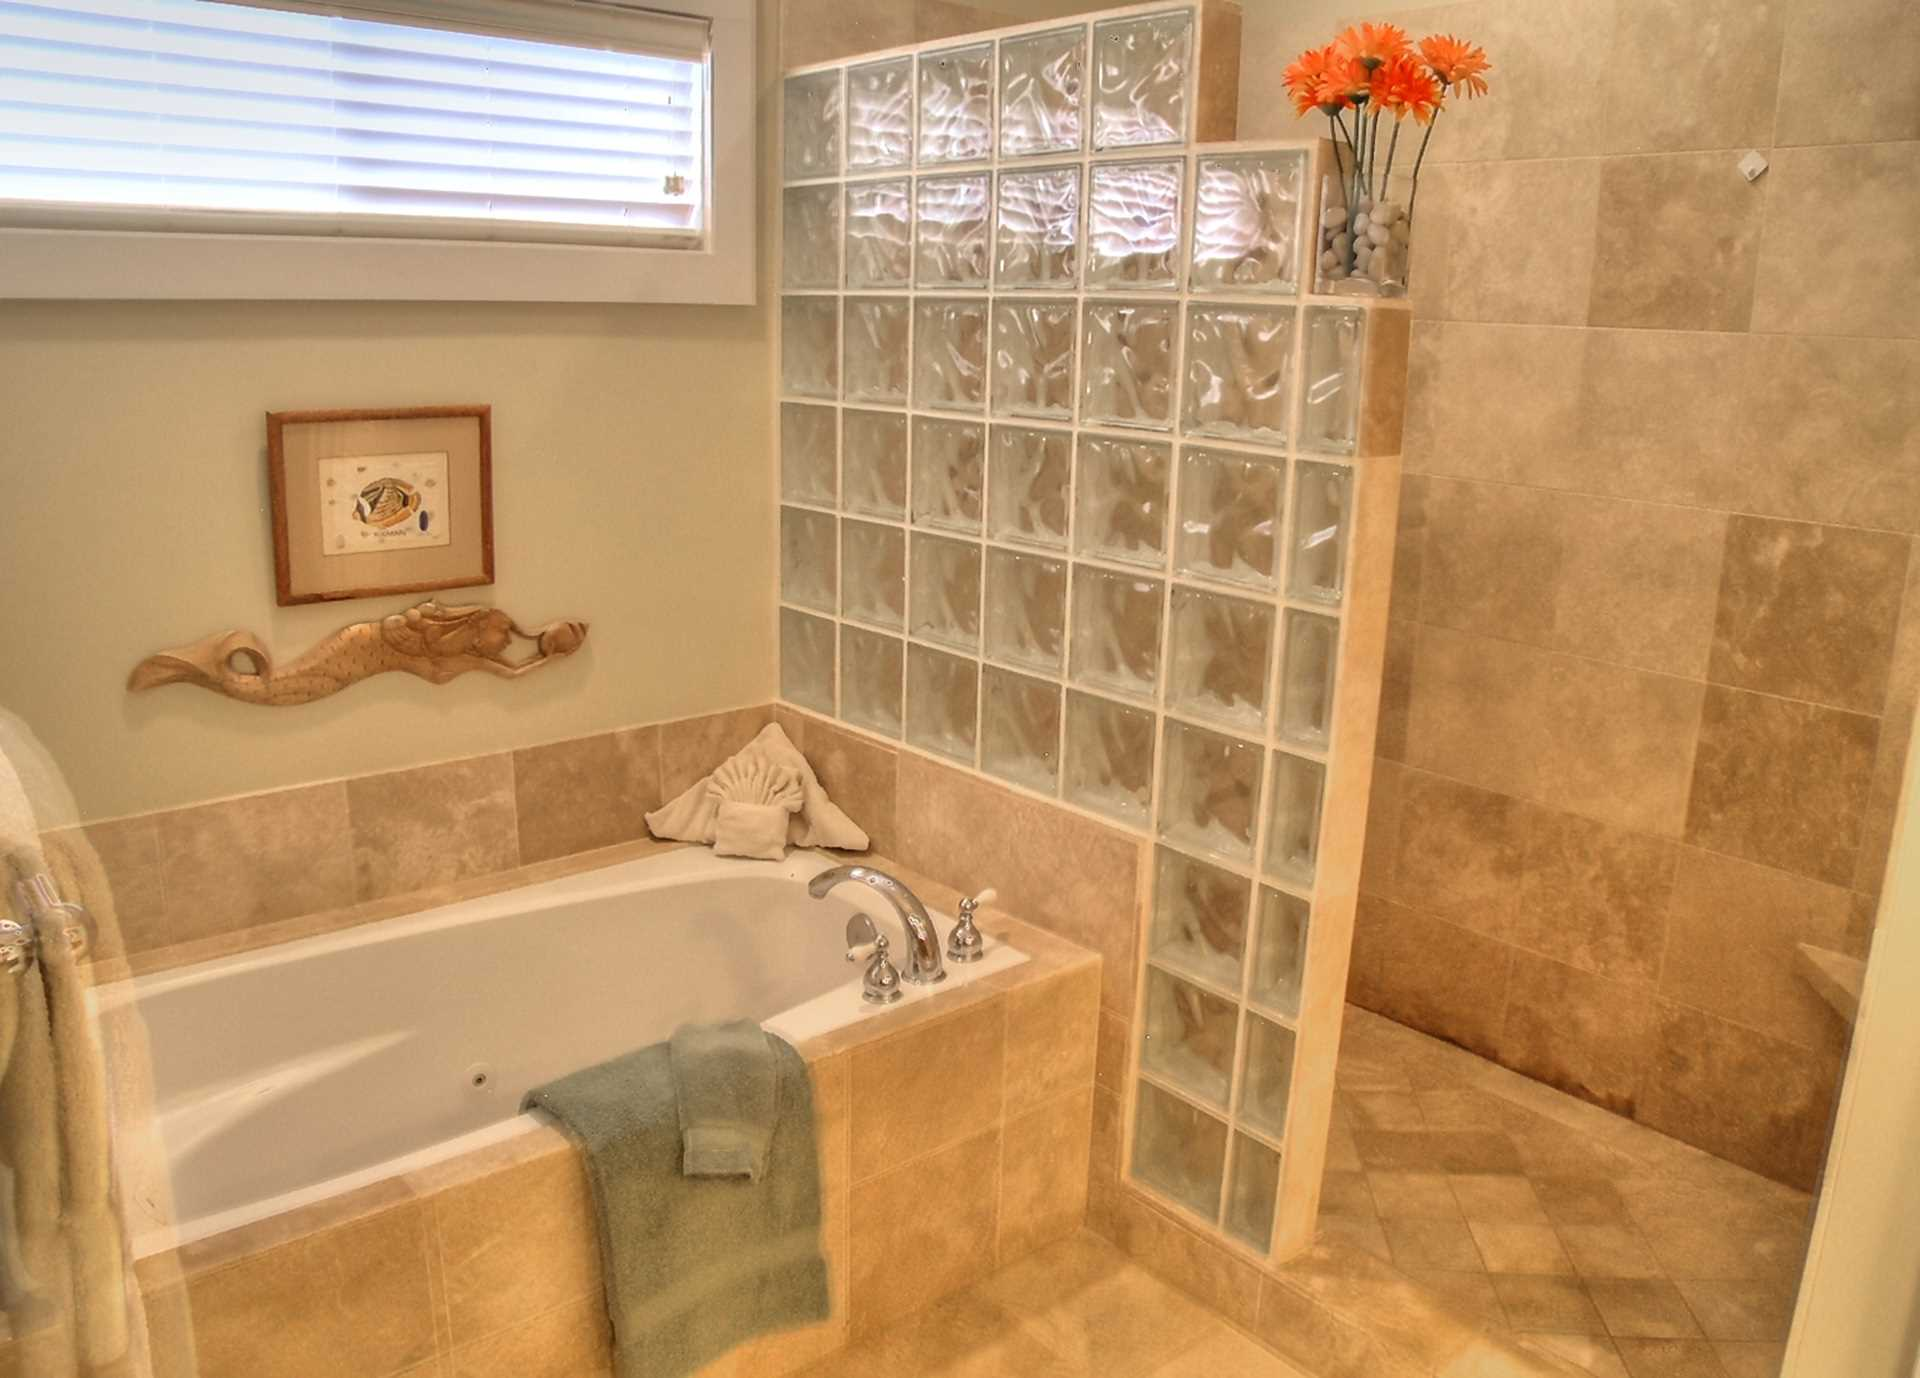 Master Bath Features a Jetted Tub, Walk-in Shower, Dual Vanity Sinks all in Travertine Tile and Glass Block